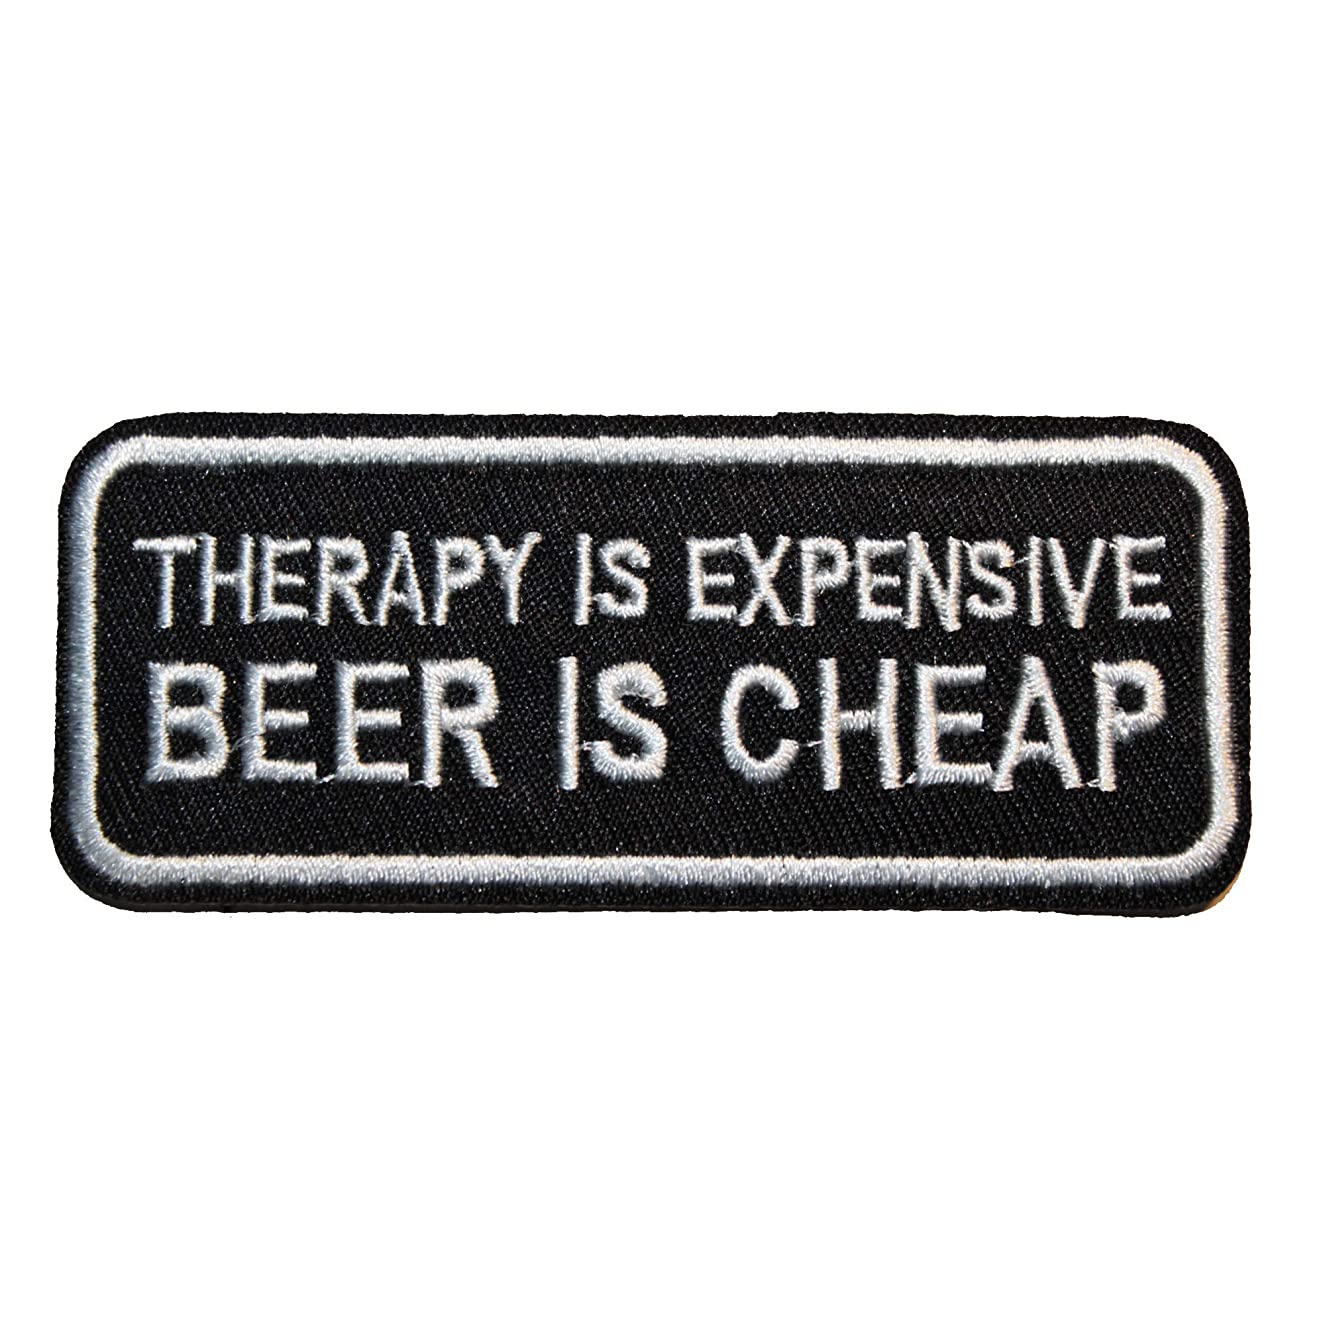 U-Sky Sew or Iron on Patches - Therapy is Expensive Beer is Cheap Patch